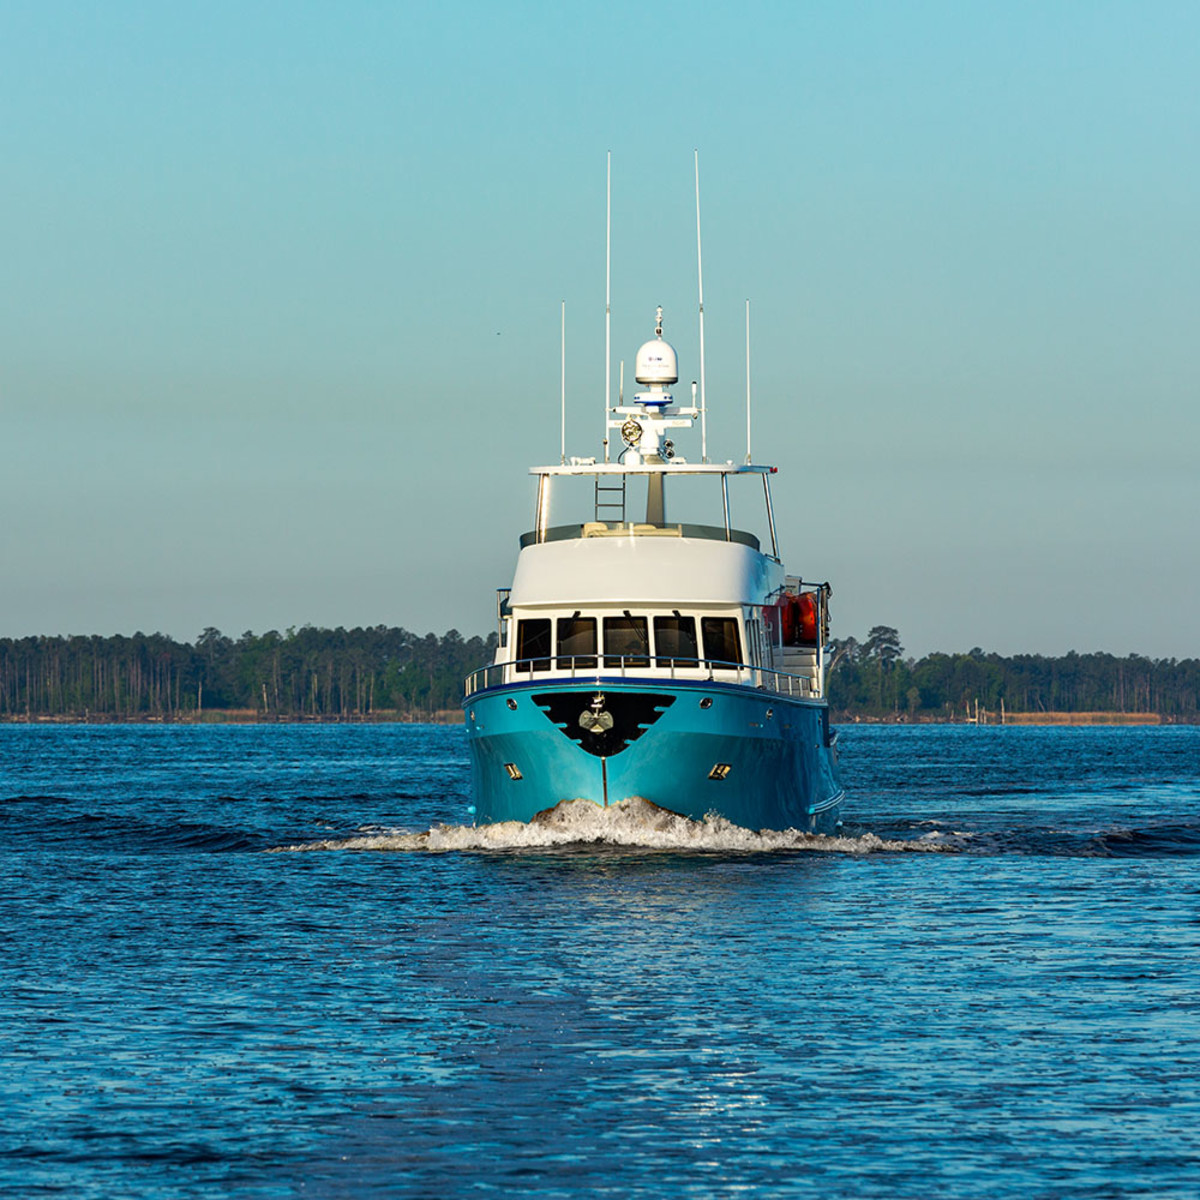 Jay Bernstein's Northern Marine 57, Agave. After taking delivery of his boat Jay took ownership of the company as well.